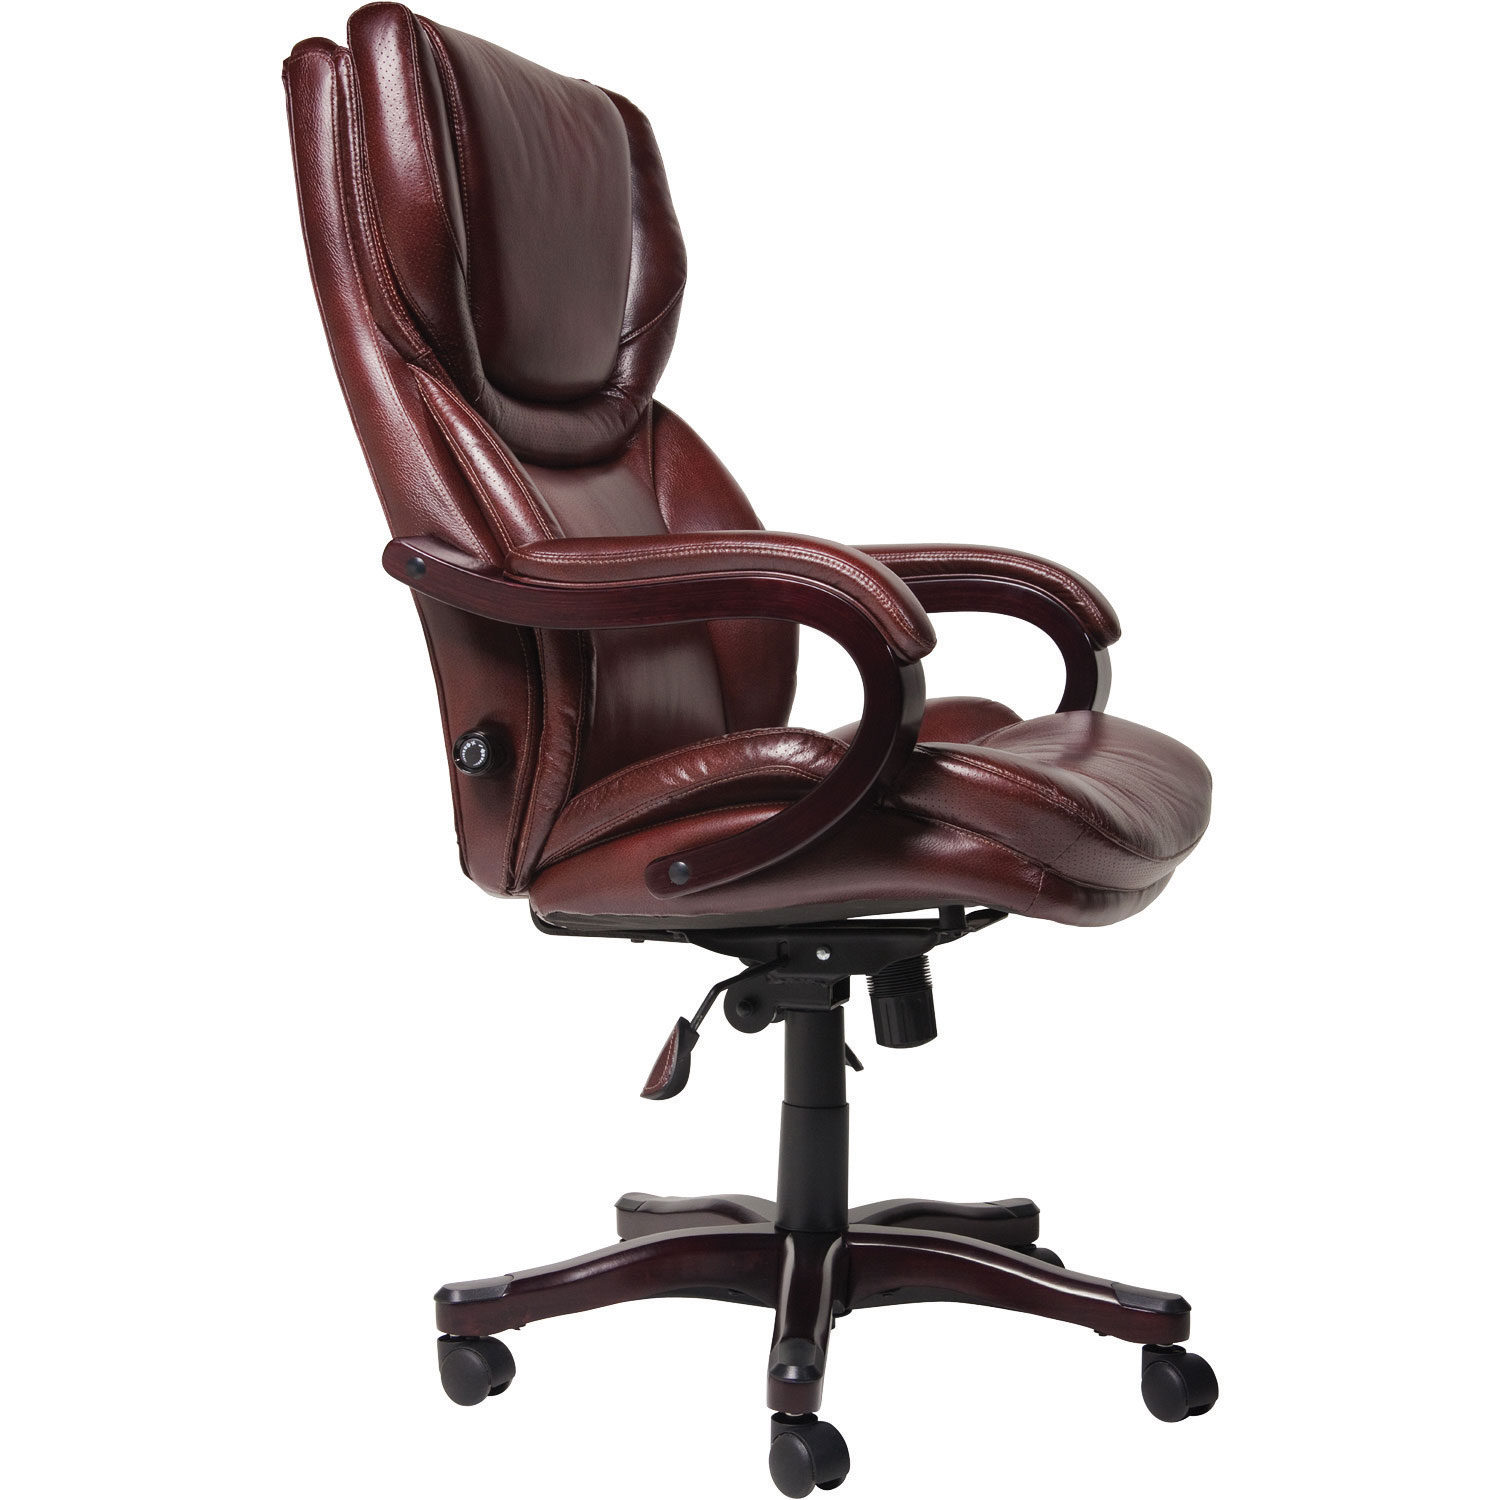 Office chairs for big and tall - Thomasville Big Tall Bonded Leather Manager Executive Chair Brown Office Chairs Best Buy Canada